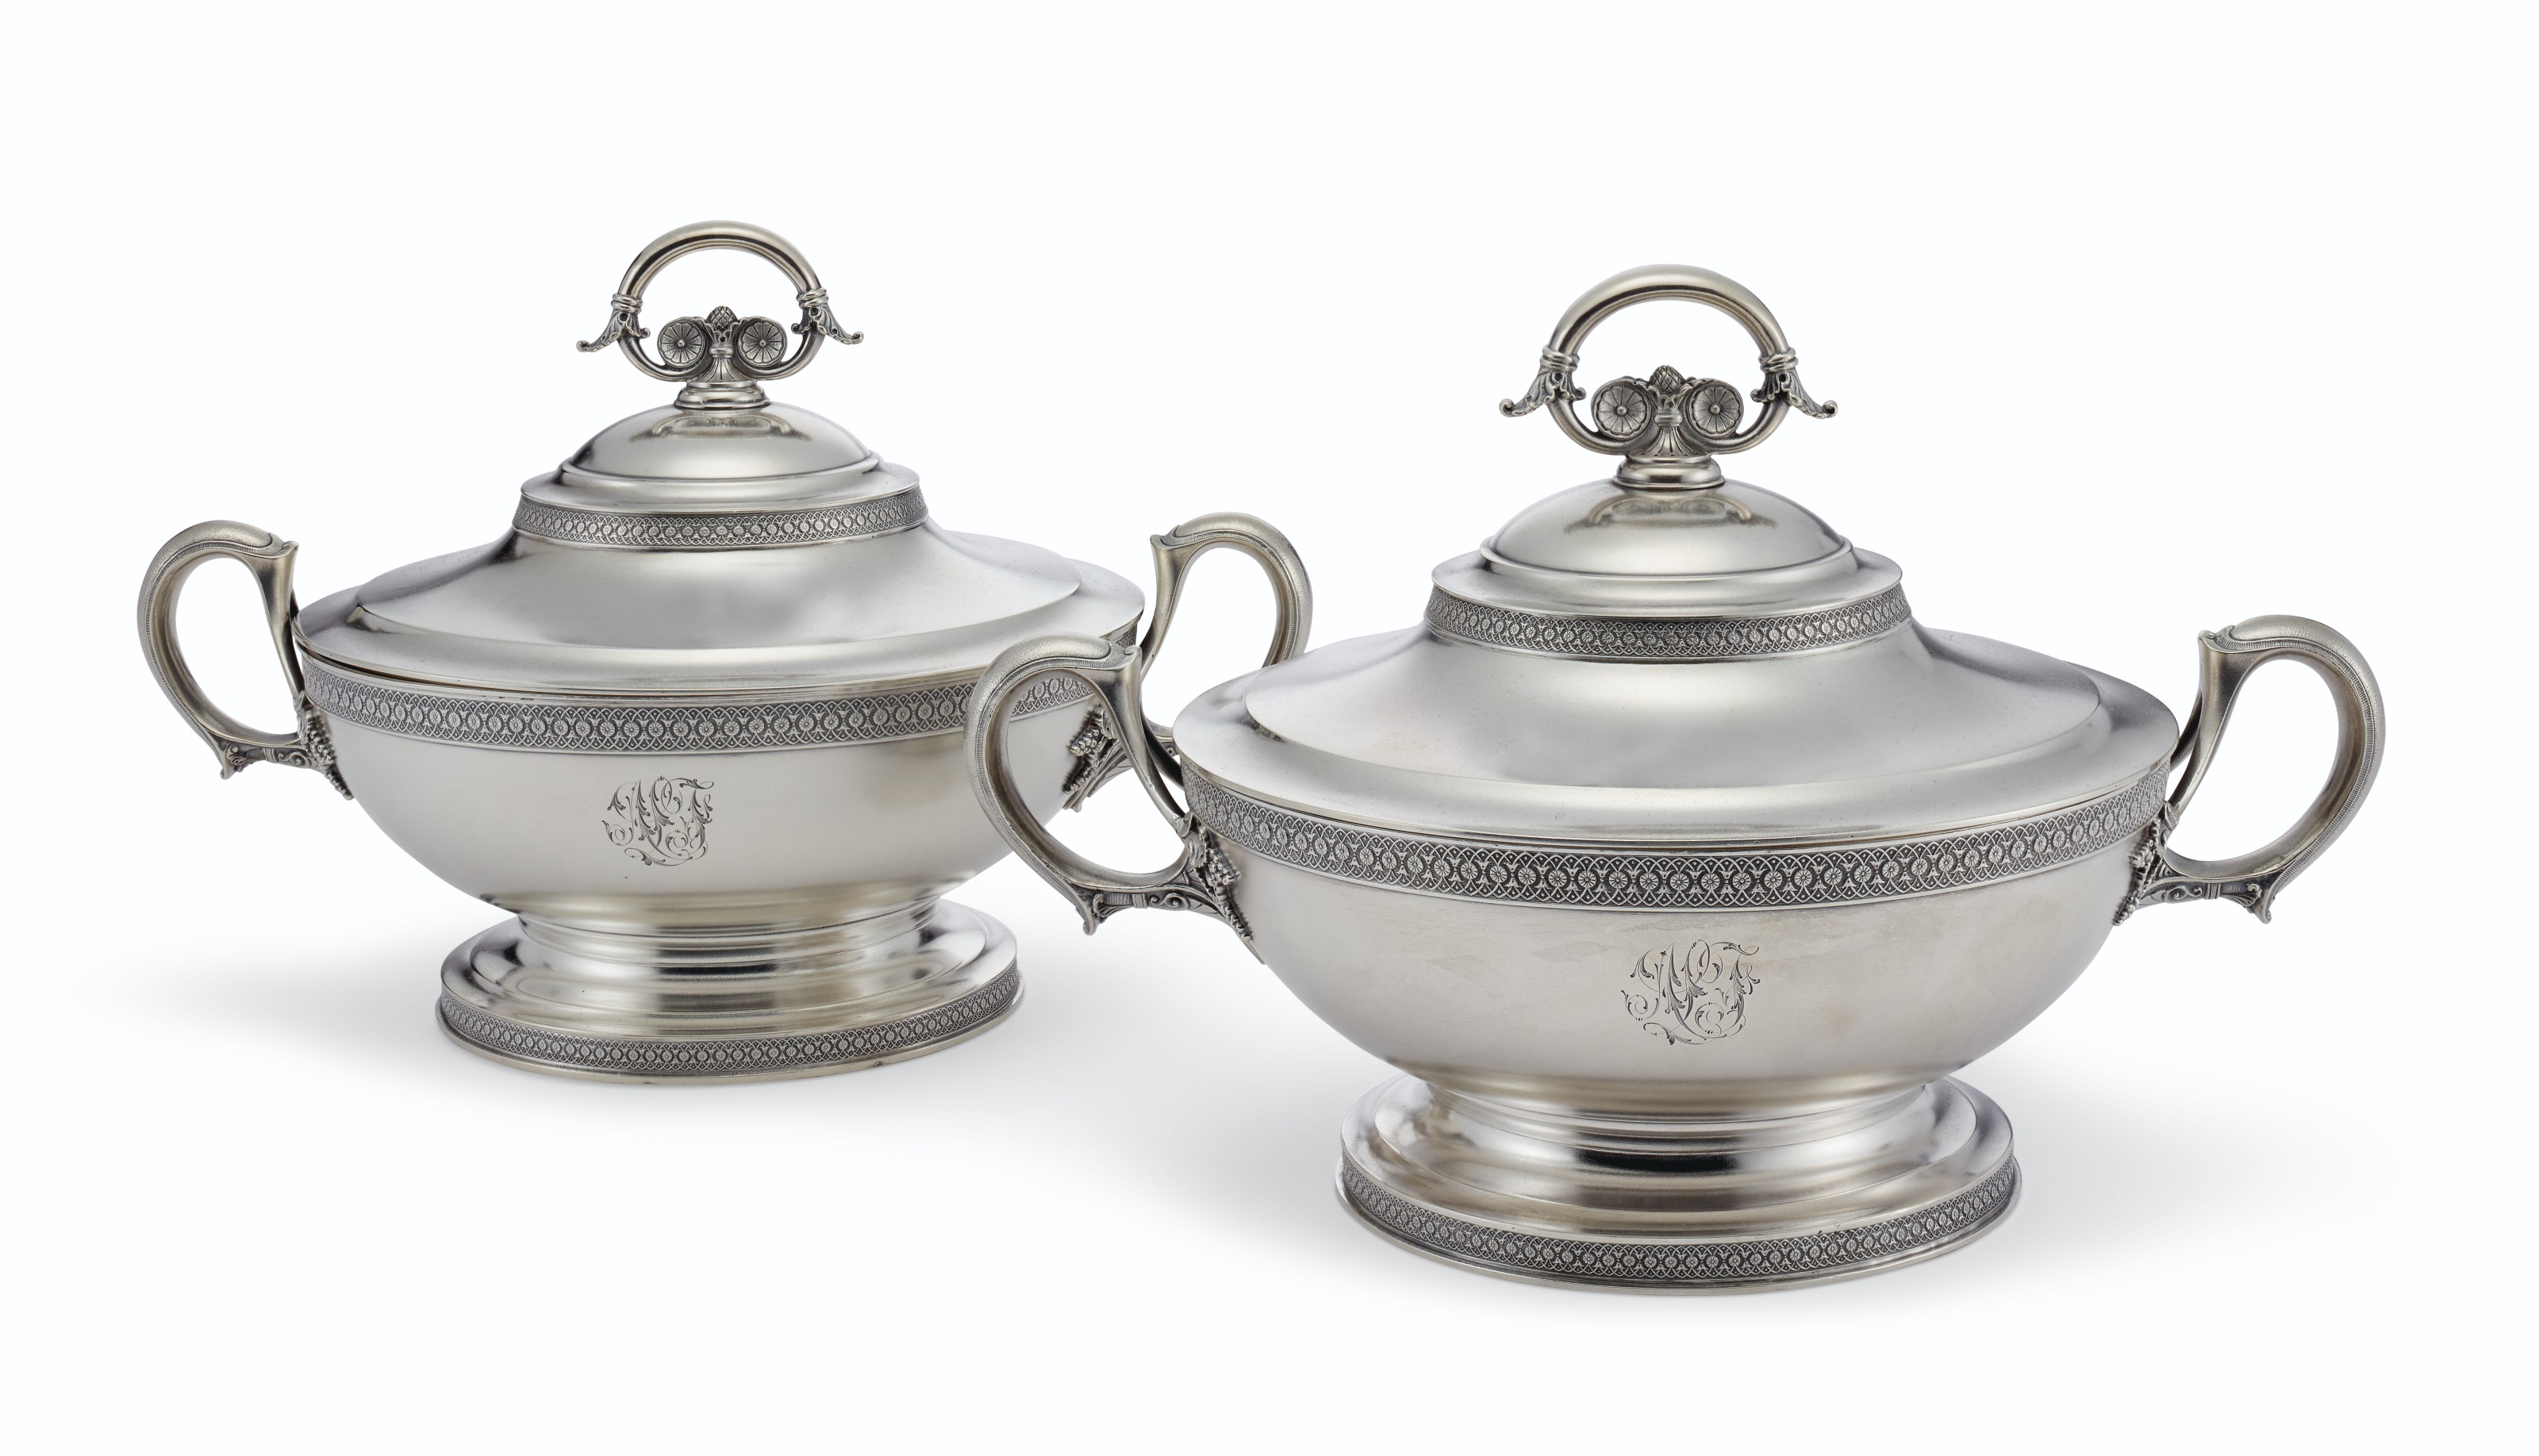 A PAIR OF AMERICAN SILVER TWO-HANDLED VEGETABLE TUREENS AND COVERS